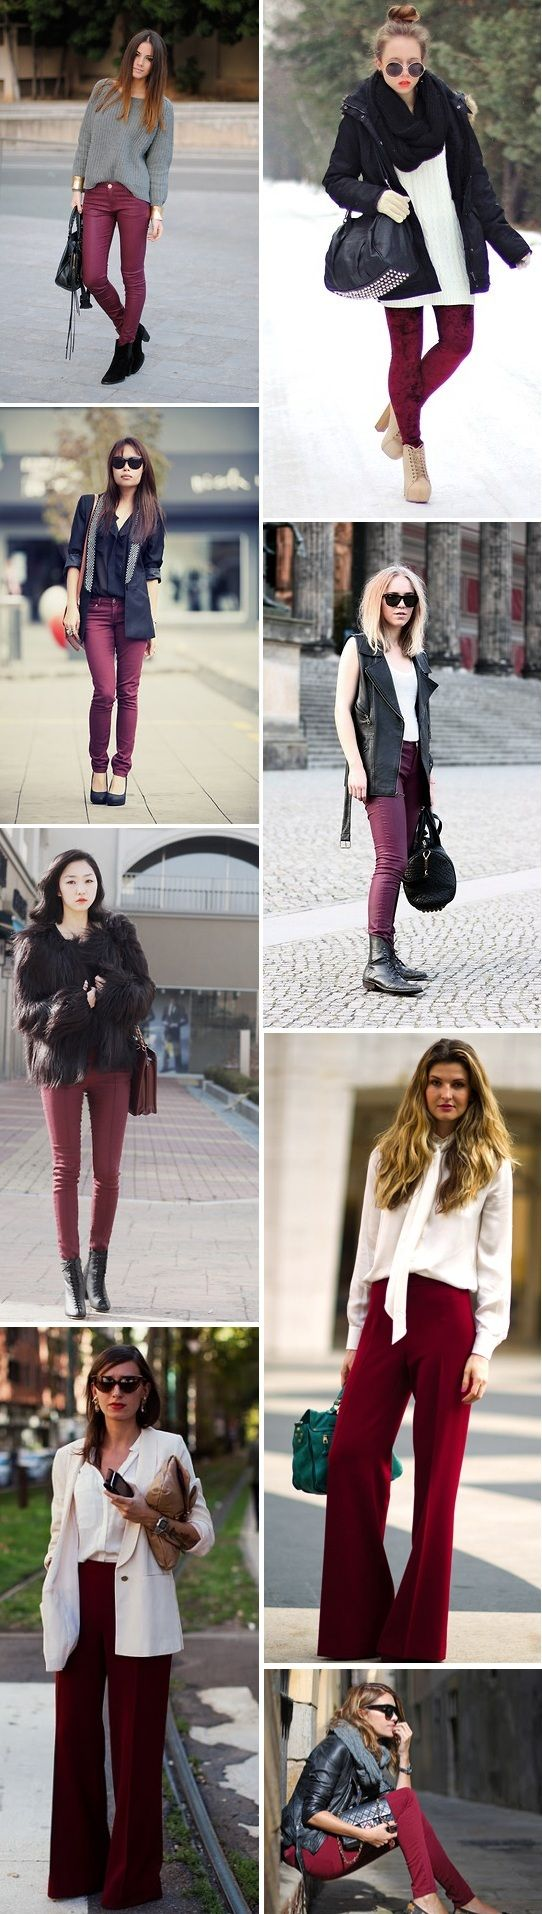 burgundy pants; add navy striped shirt, leopard scarf/flats, & shambray shirt somewhere in there too